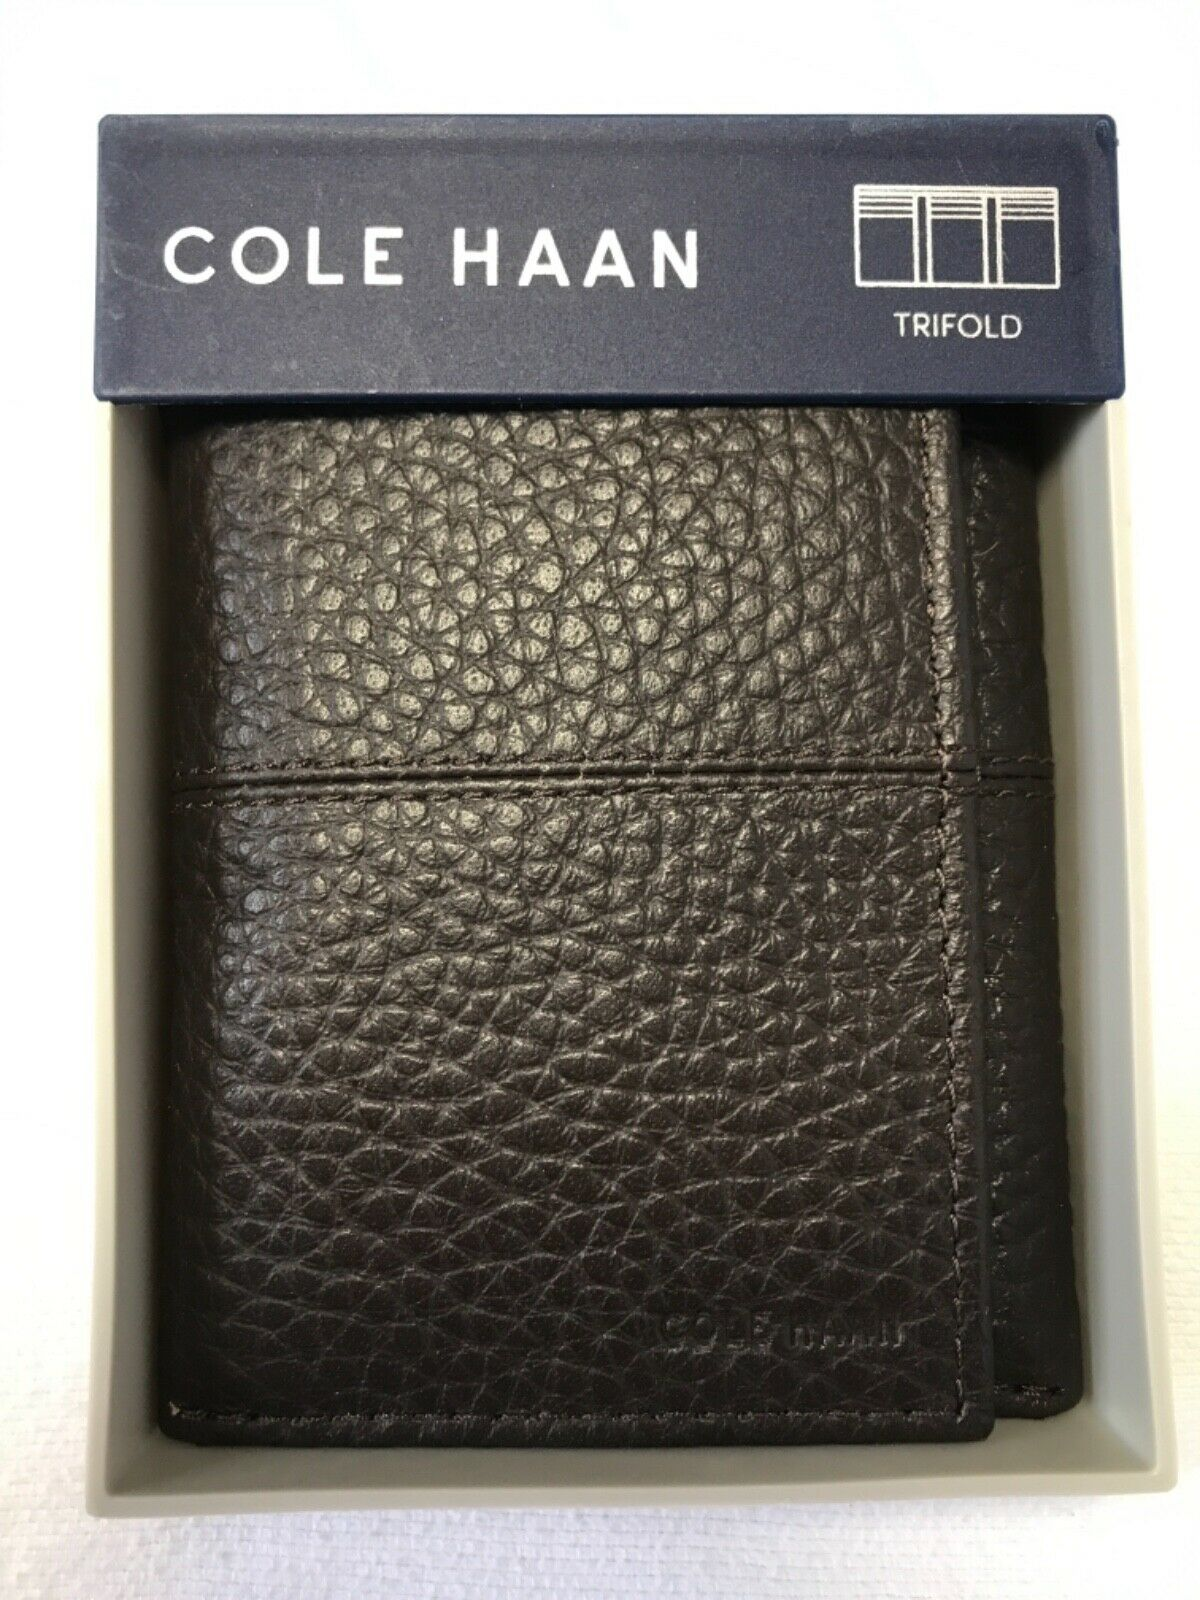 COLE HAAN MENS WALLET TRIFOLD LEATHER CHOCOLATE BROWN RETAIL- NIB